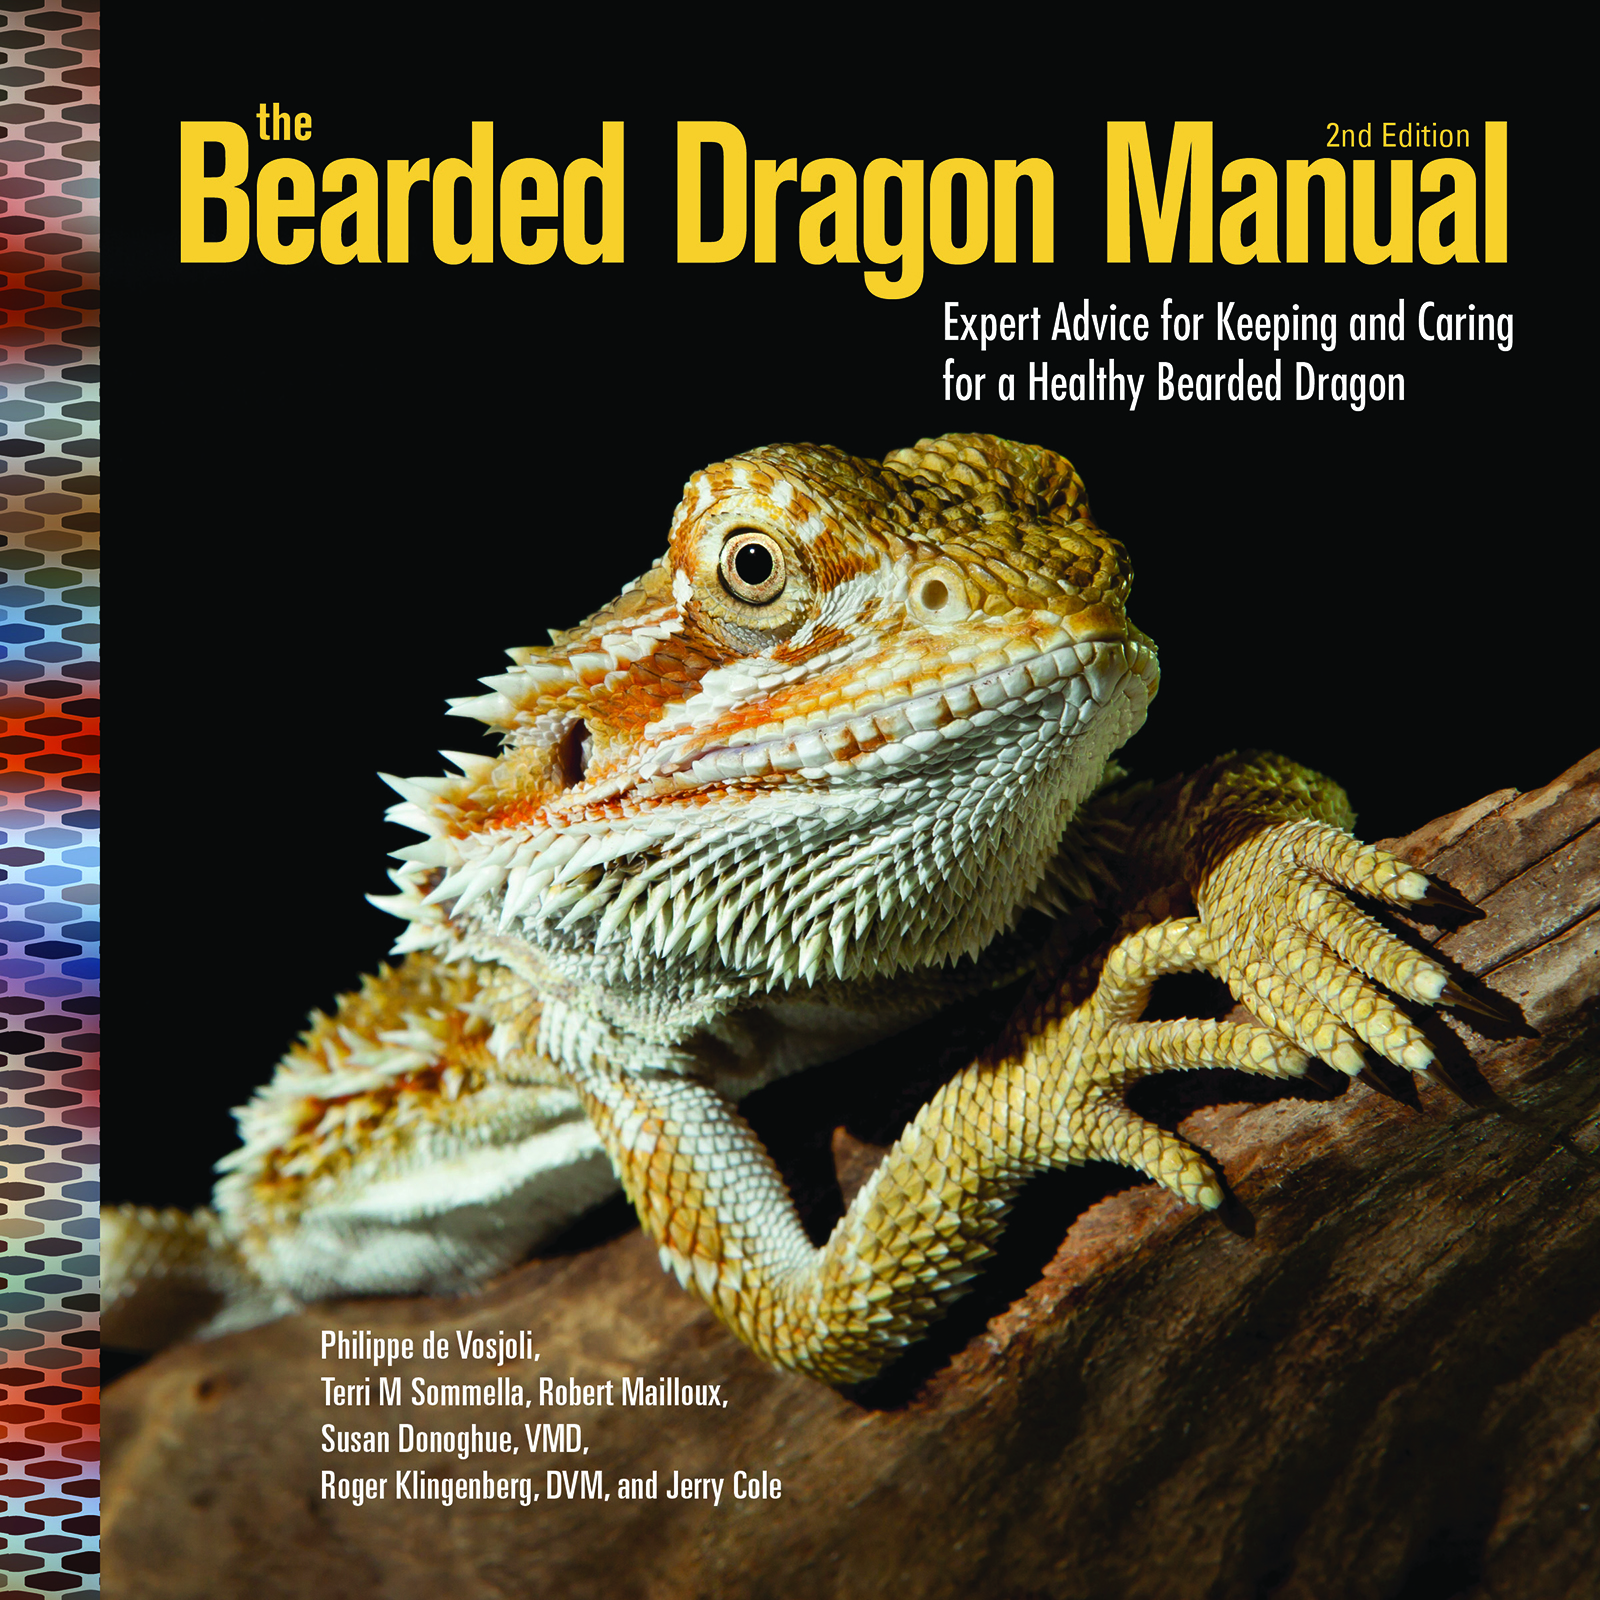 The Bearded Dragon Manual Expert Advice for Keeping and Caring For a Healthy Bearded Dragon